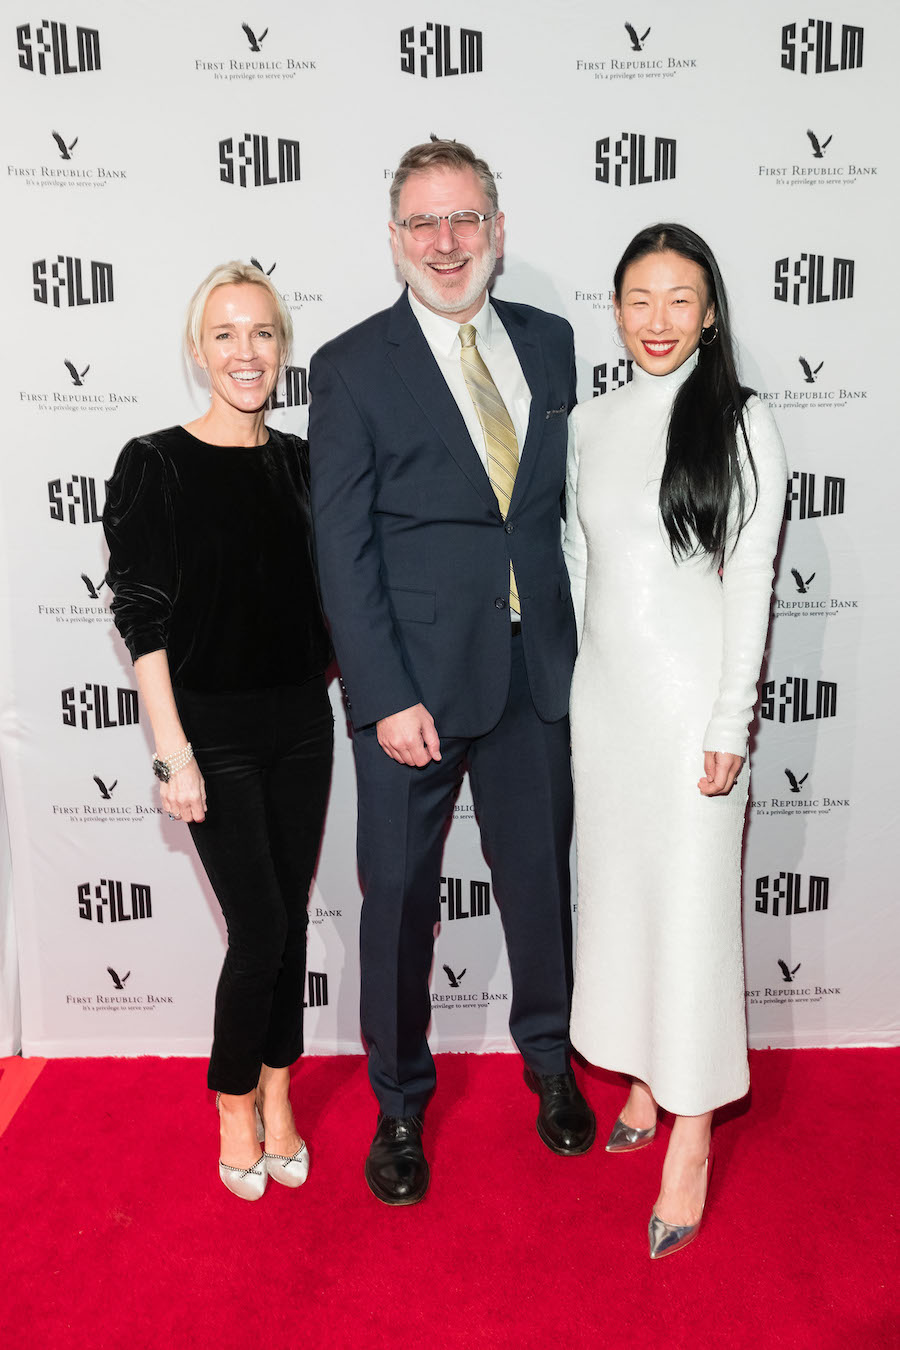 Heidi Fisher, Noah Cowan and Sonya Yu